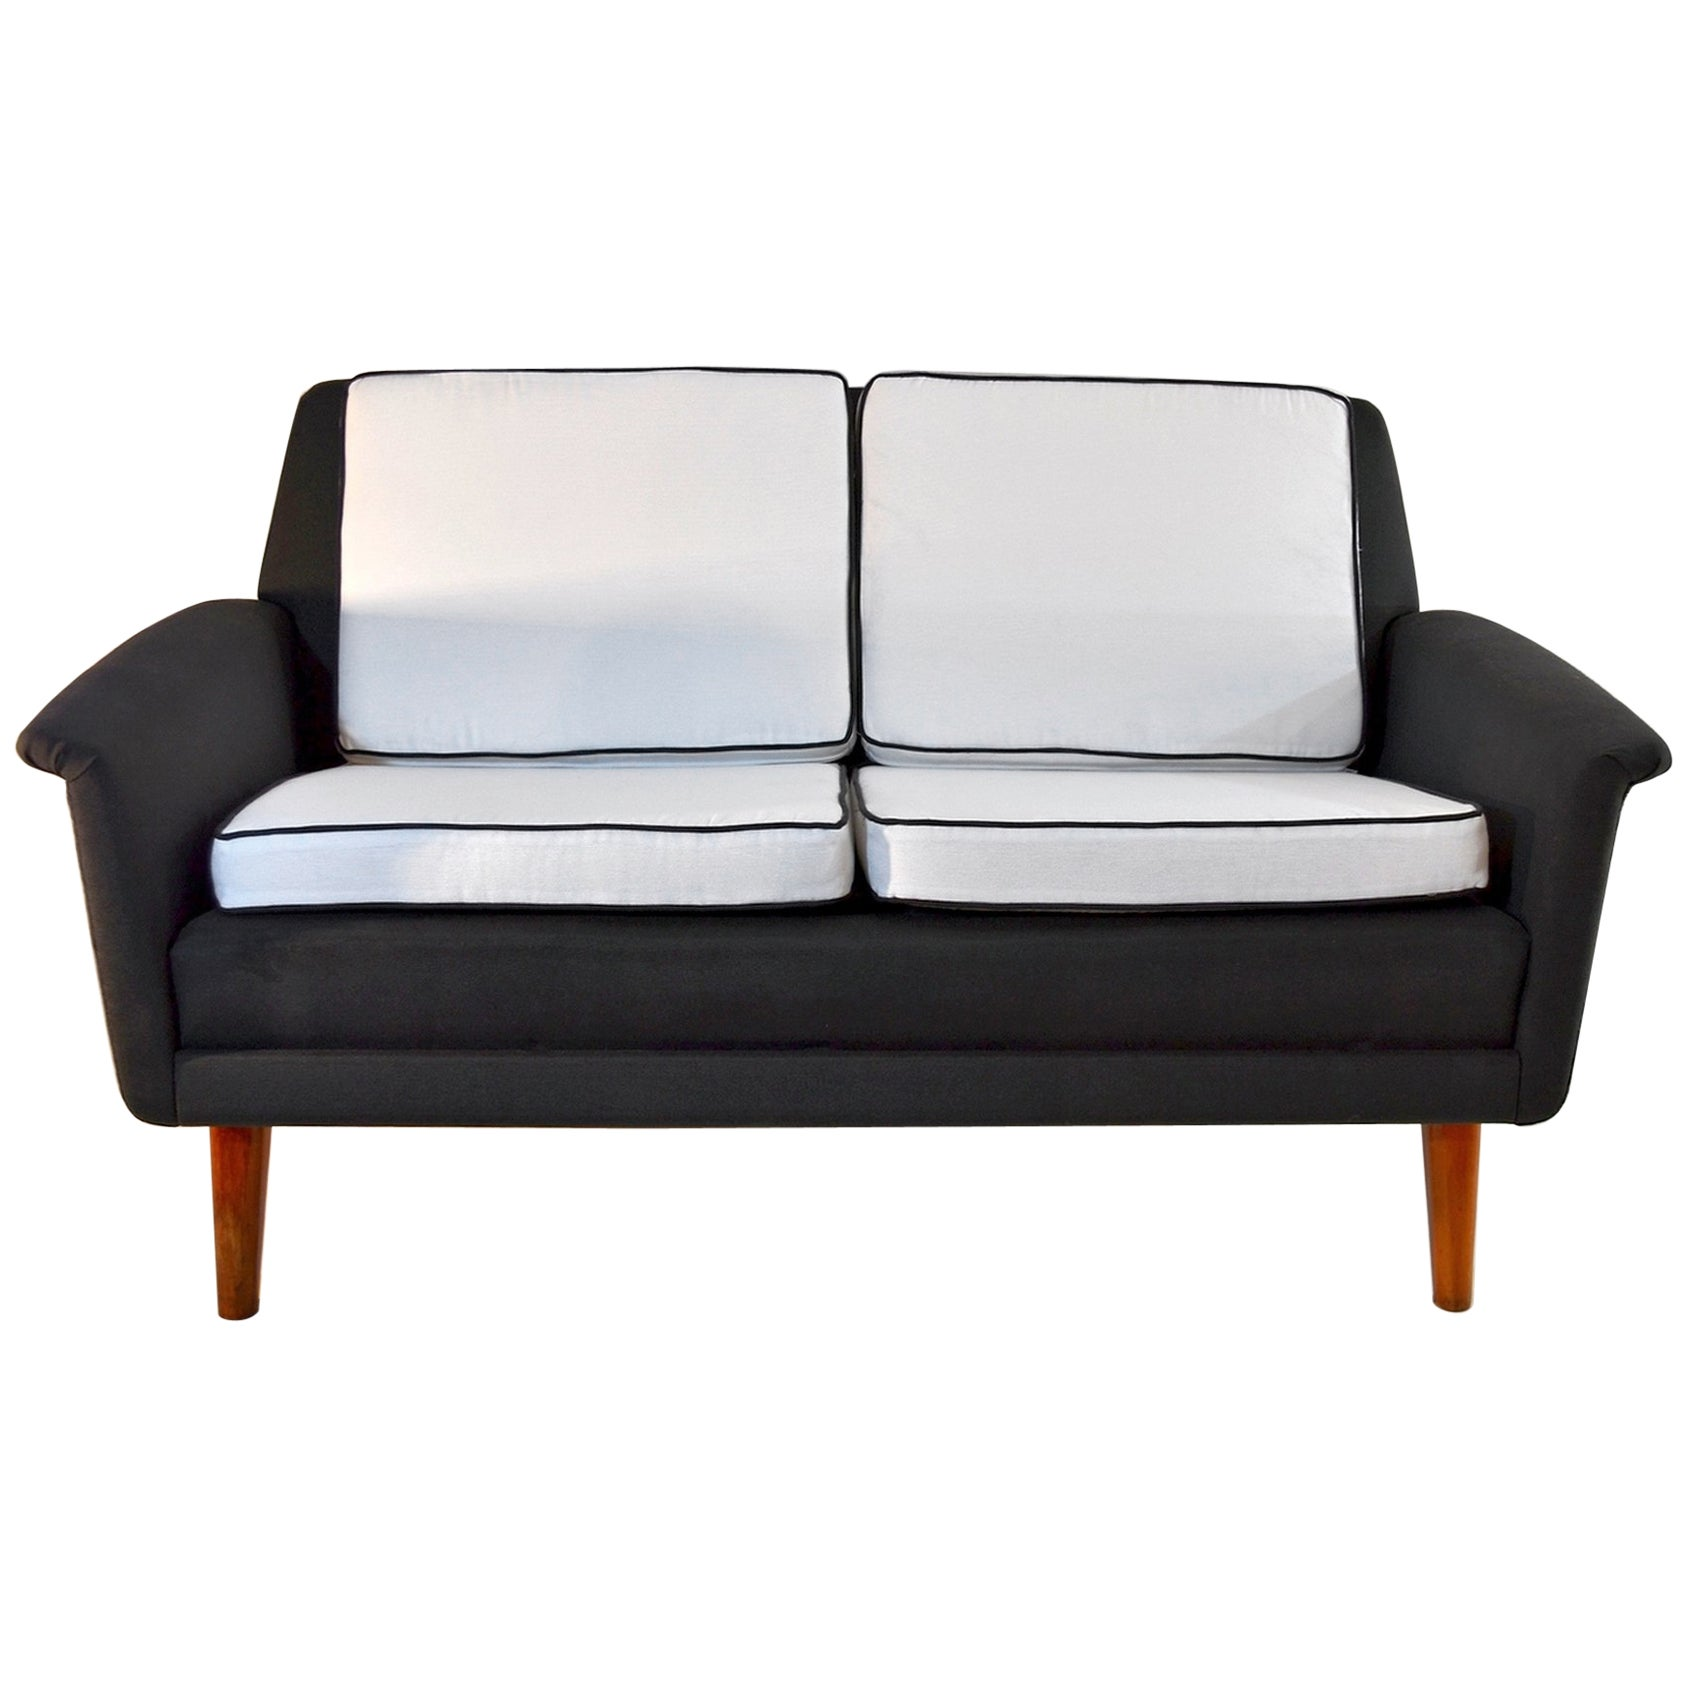 Exceptionnel Two Seat DUX Sofa By Folke Ohlsson, 1960s